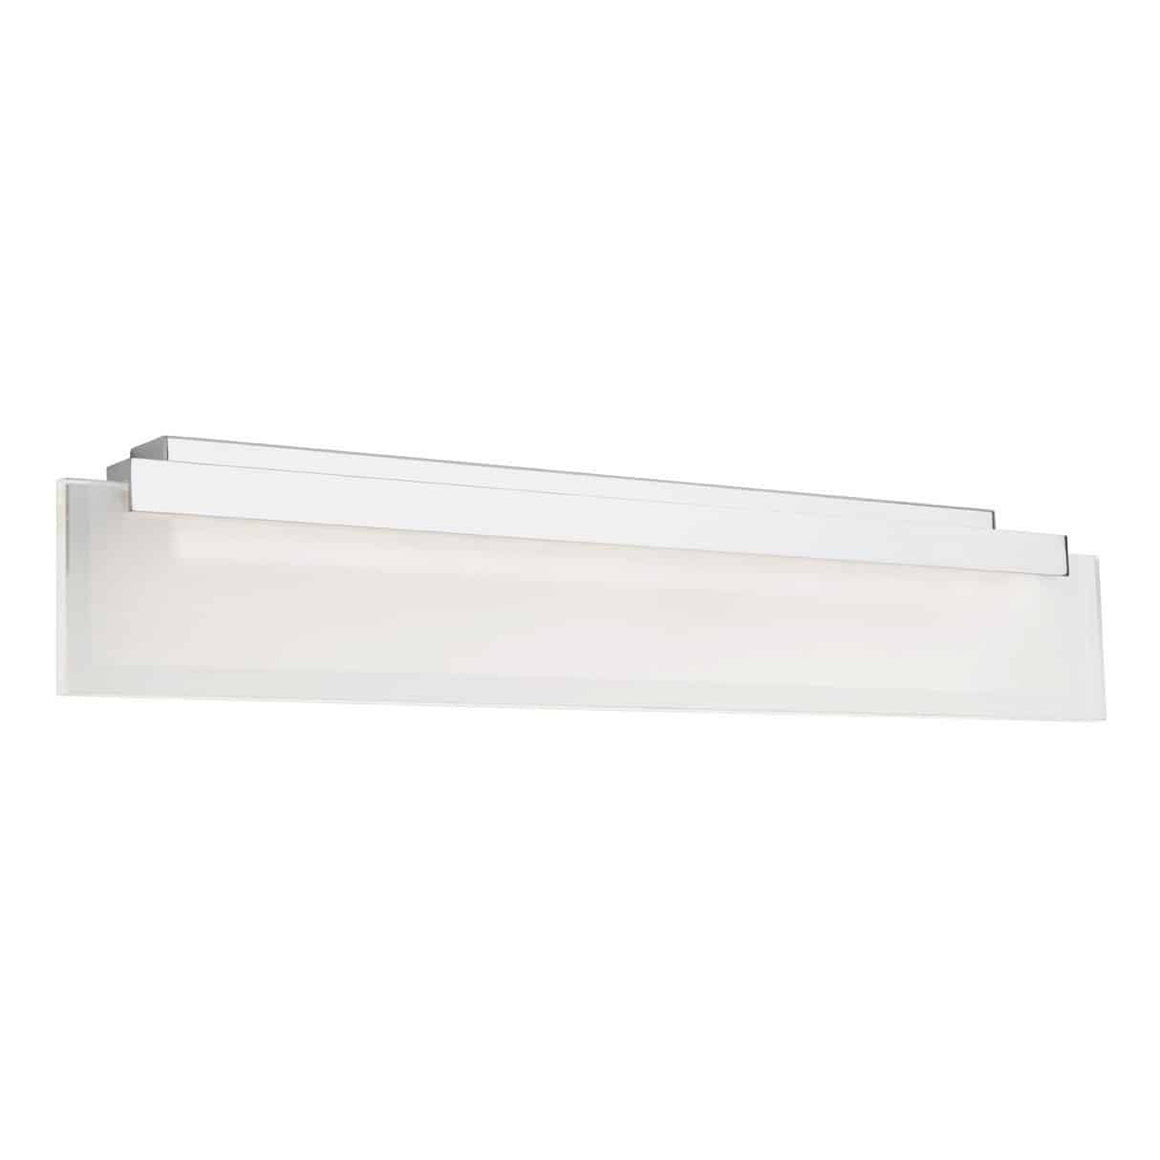 GAMMA 12W LED VANITY LIGHT